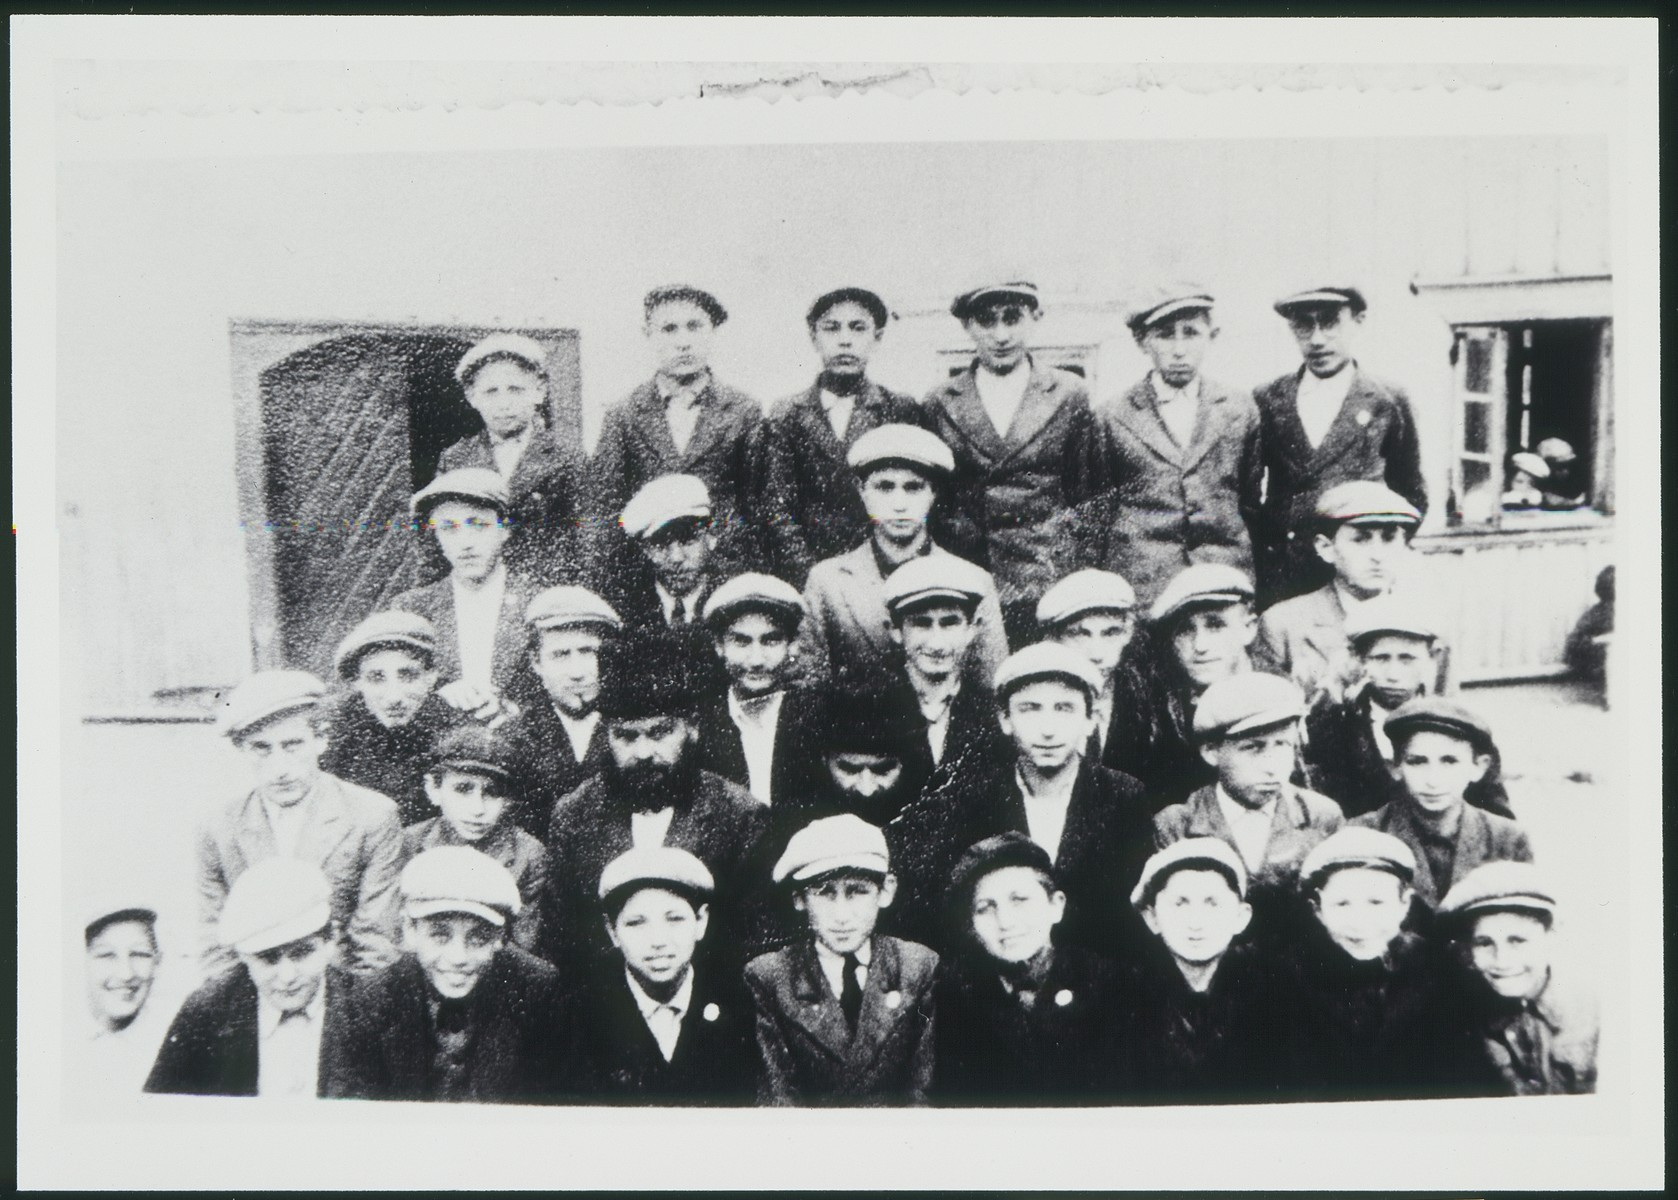 Group portrait of students in a small yeshiva in Eisiskes.    Those pictured include Avraham Aviel, Rabbi Mordechai Berr, Rabbi Mendel and Shora Lamtah.